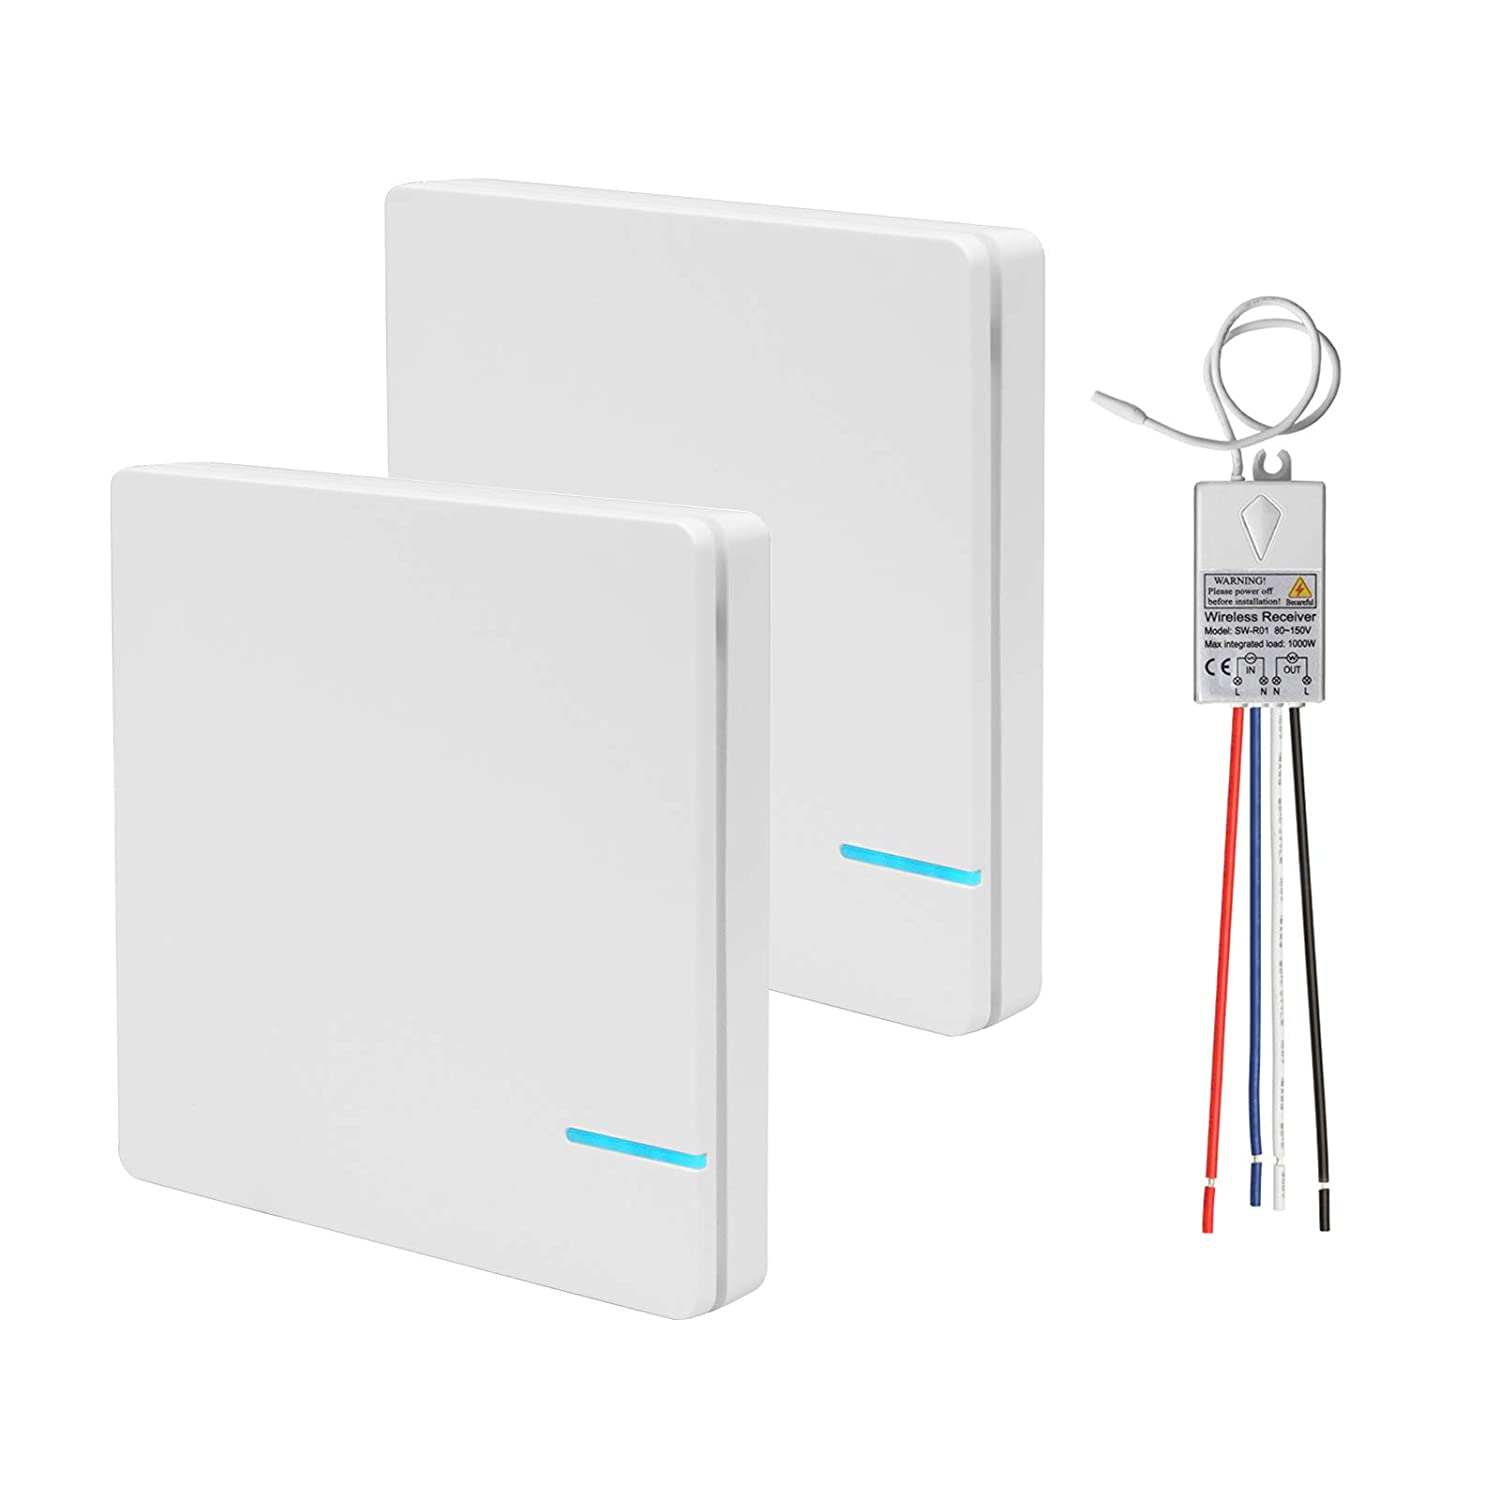 Indoor 131 ft eoere No Wiring Outdoor 1968 ft Double Wireless Light Switch One Receiver Kit for Lamps Ceiling Fans Appliances Night Light Indicator